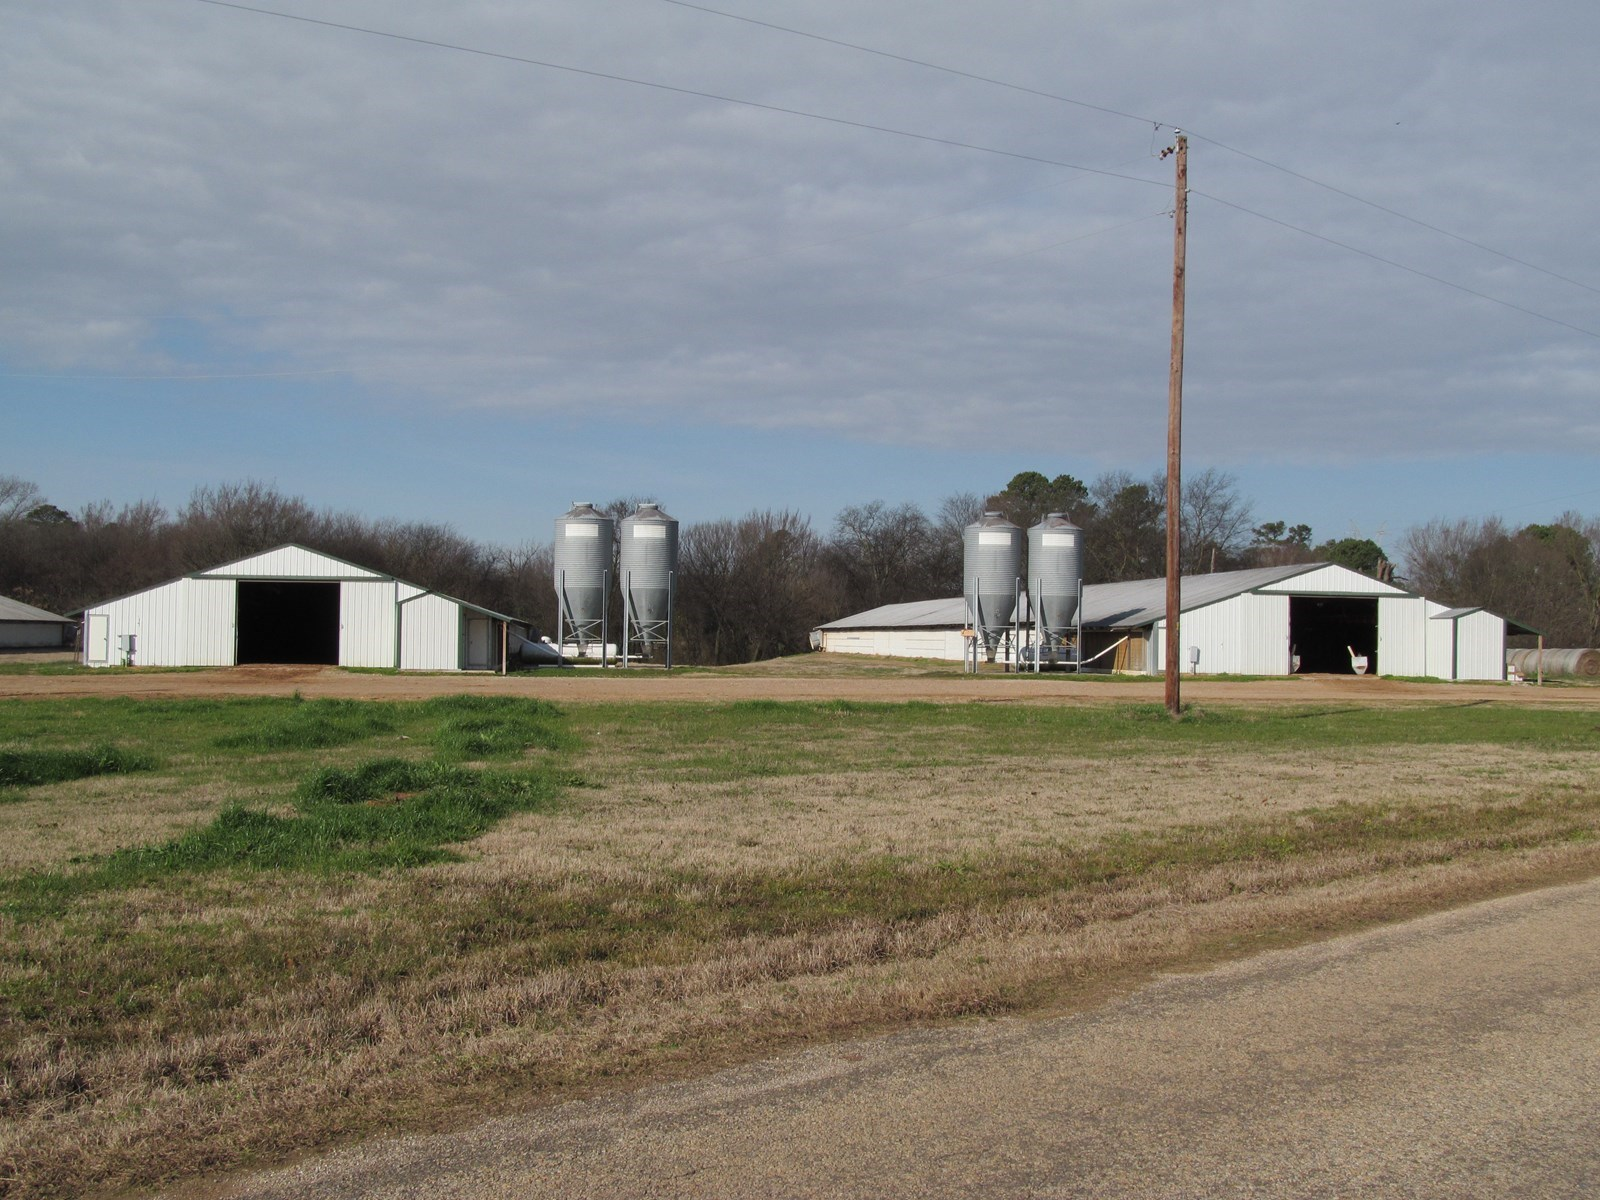 MOUNT VERNON POULTRY FARM FOR SALE - FRANKLIN COUNTY, TEXAS